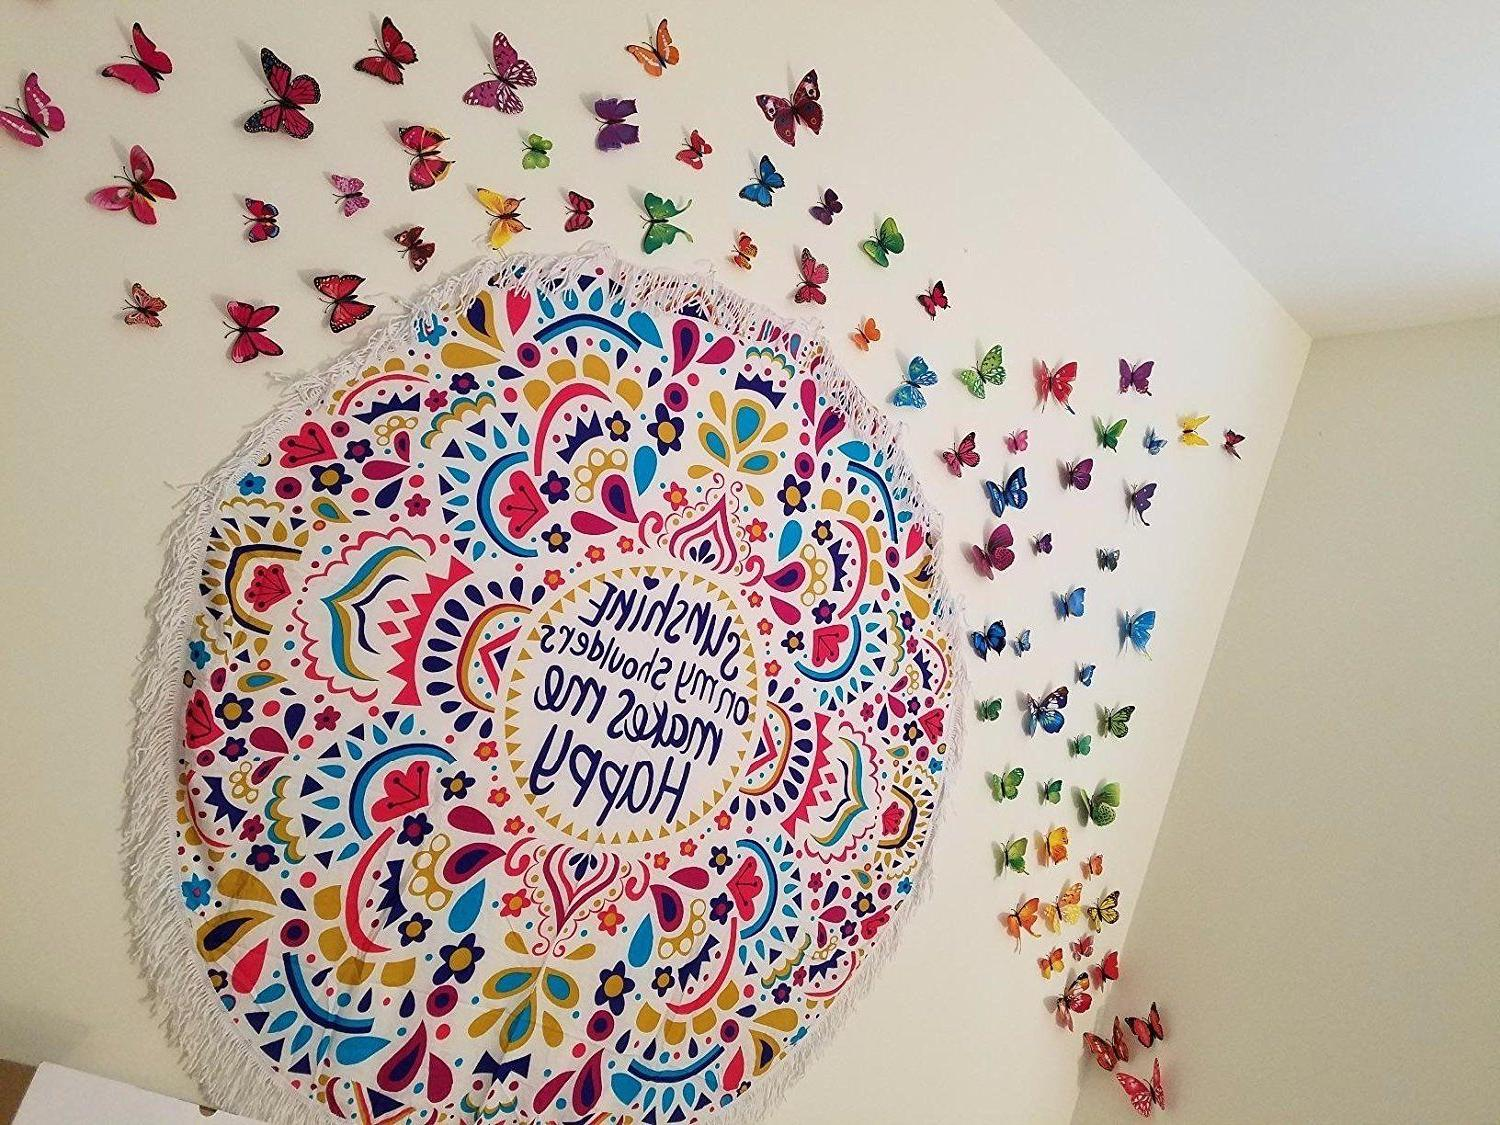 72pcs Butterfly Wall Stickers Kids Room Decor Removable